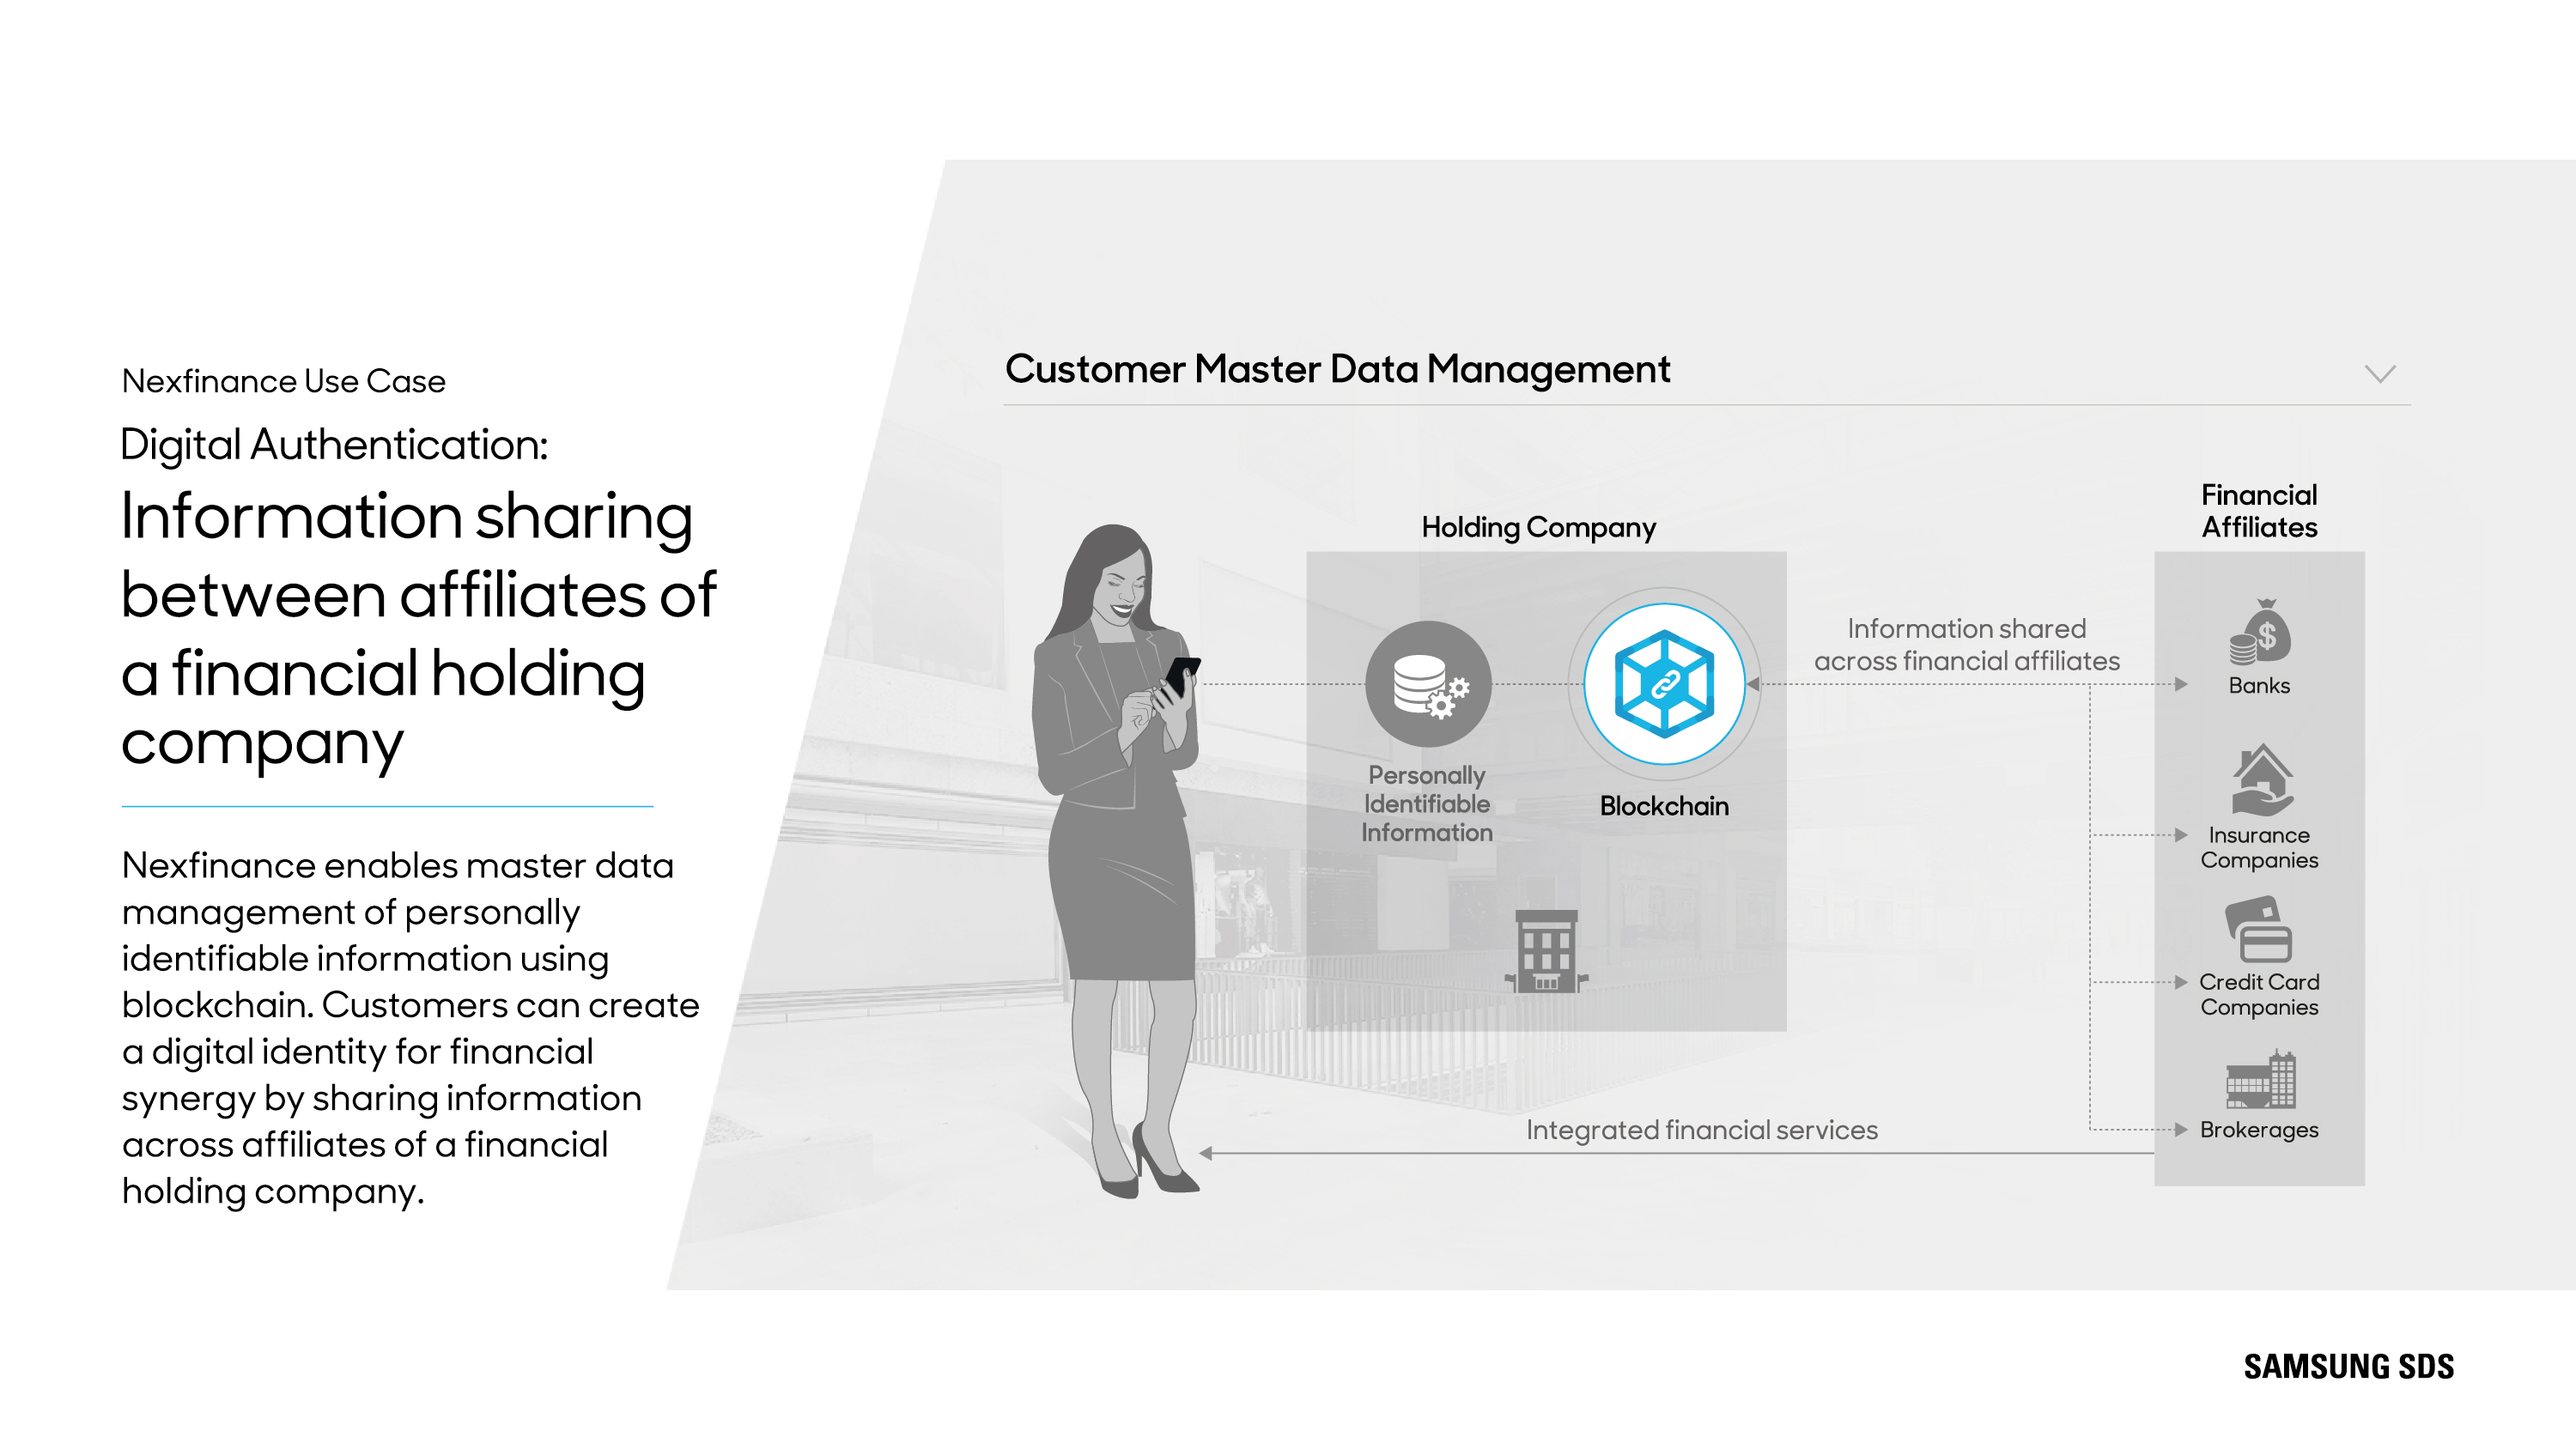 Digital Authentication: Information sharing between affiliates of a financial holding company  Nexfinance enables master data management of personally identifiable information using blockchain. Customers can create a digital identity for financial synergy by sharing information across affiliates of a financial holding company.